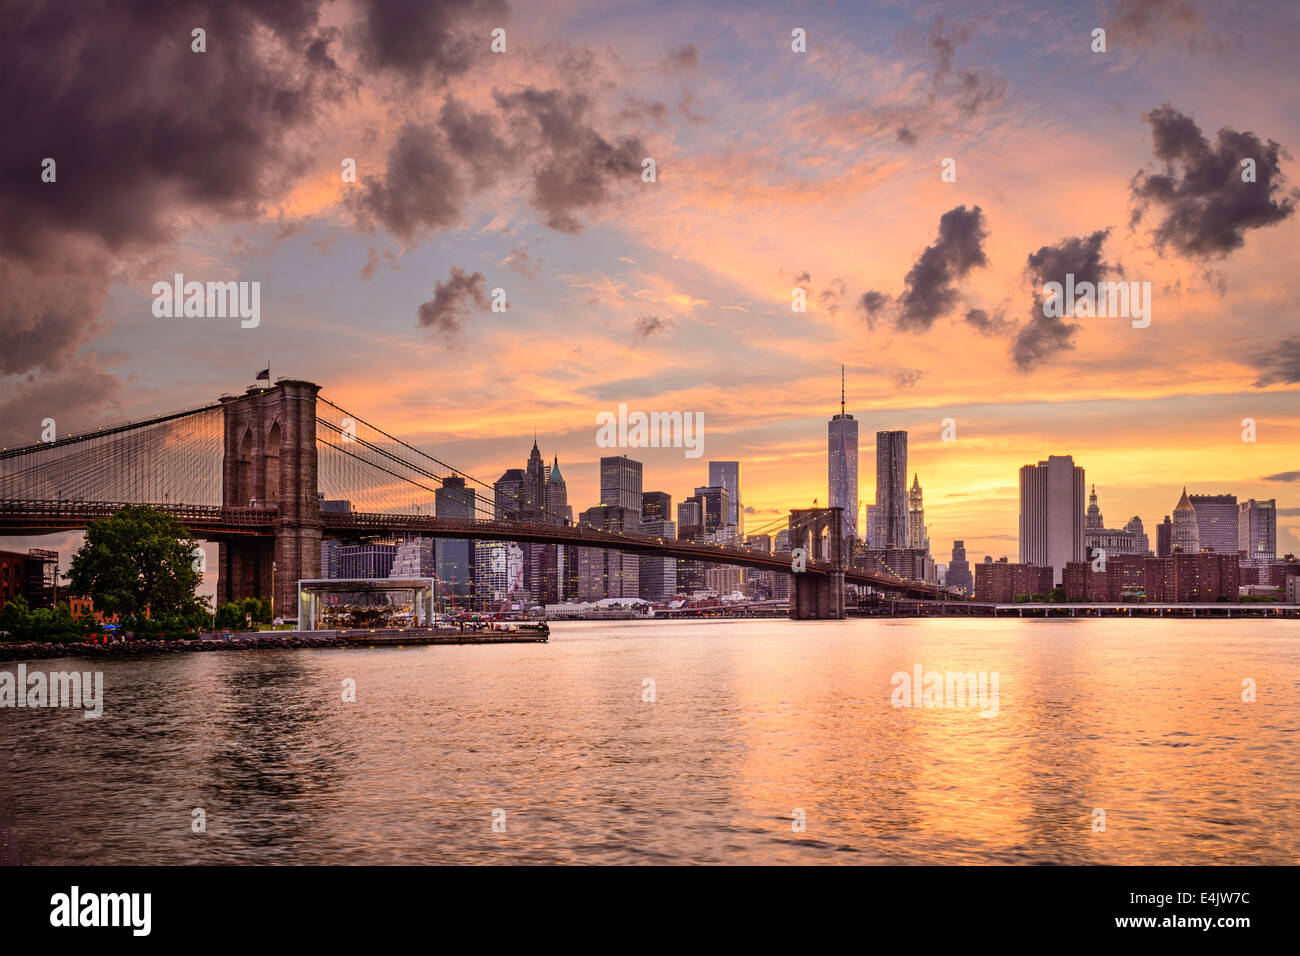 New York City, USA skyline at sunset. - Stock Image